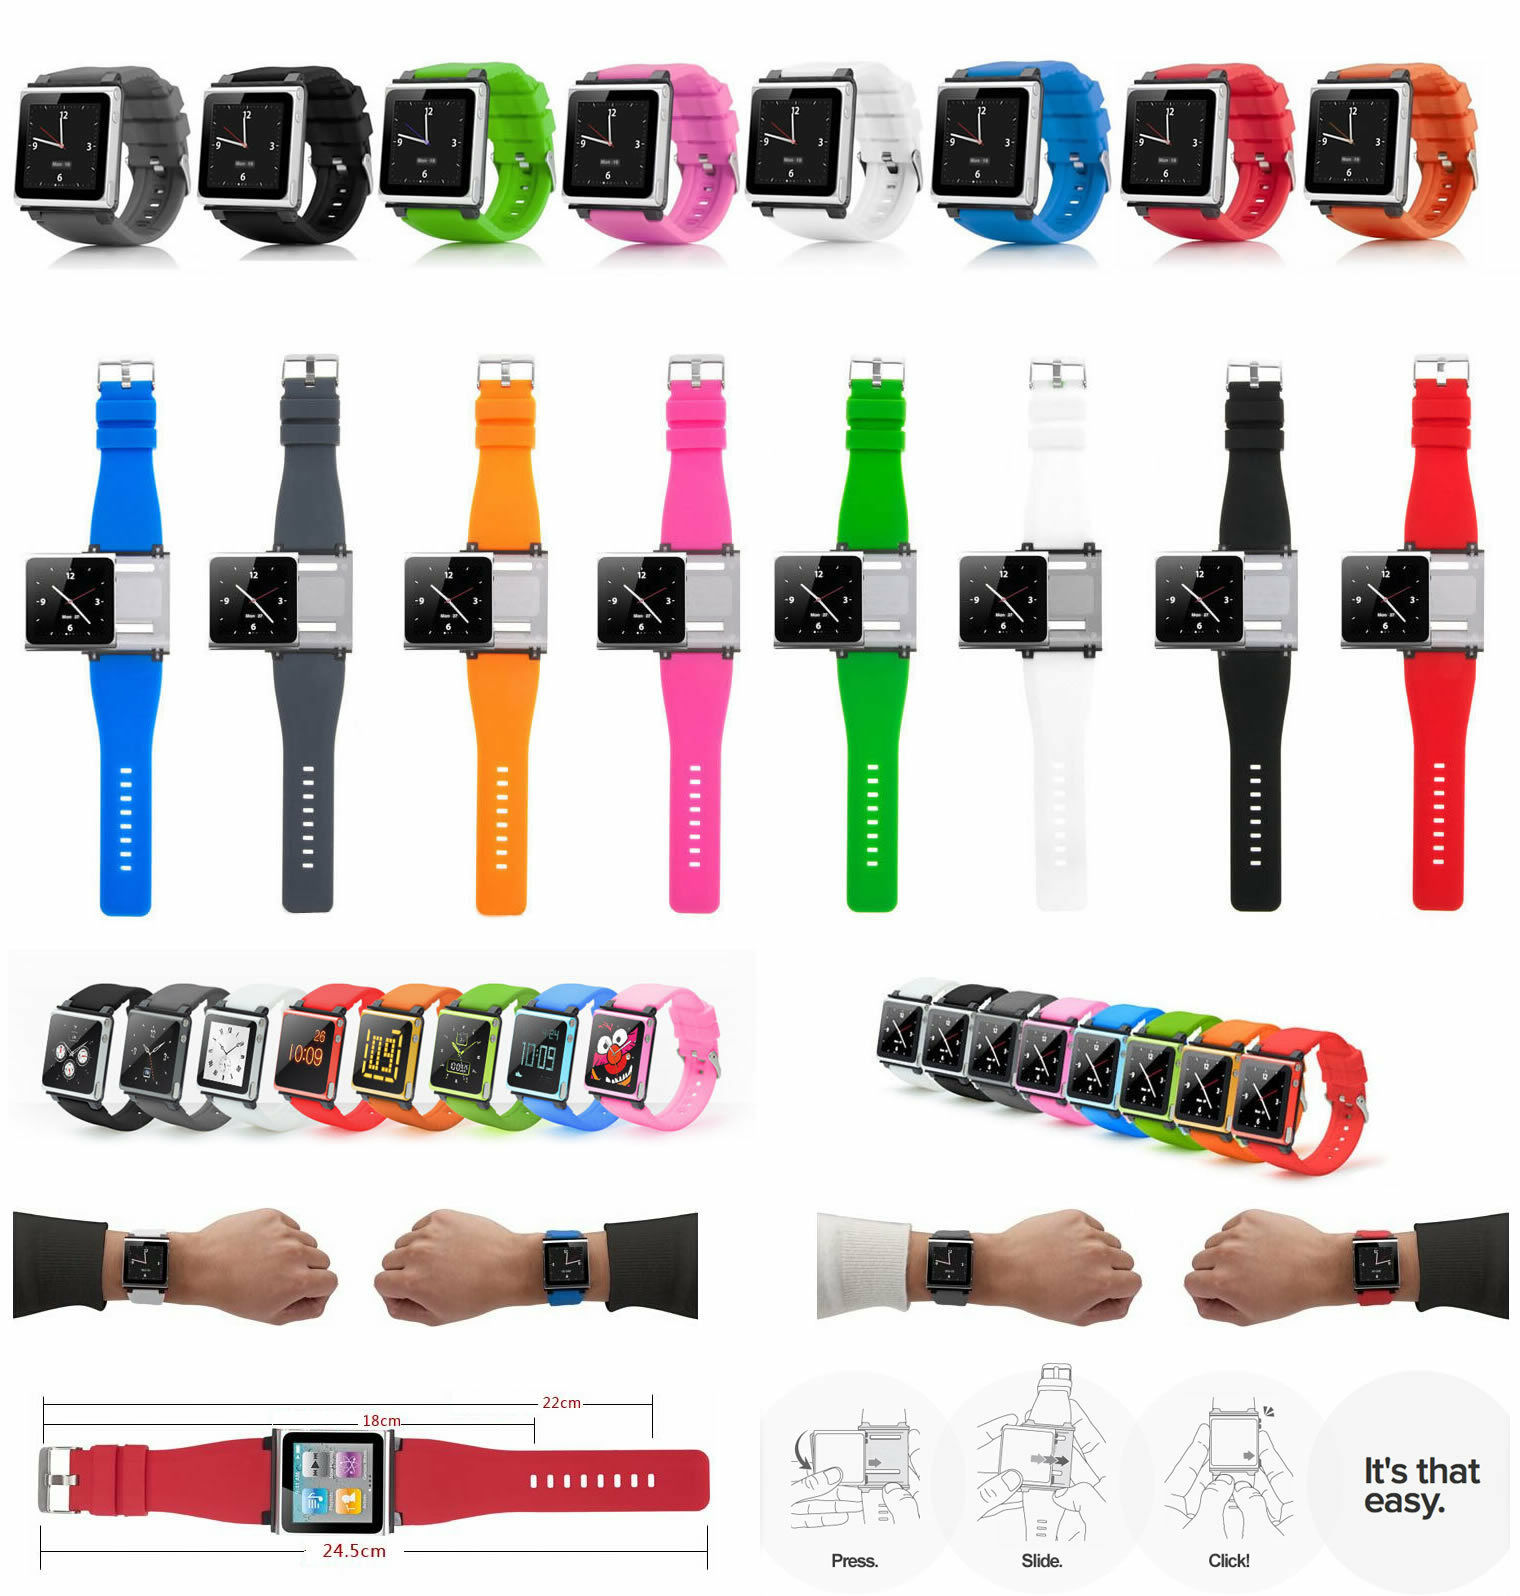 Multi-Touch Watch Band Kit Wrist Strap Bracelet For IPod Nano 6 6th 6g Silicone Watch Band Wrist Strap